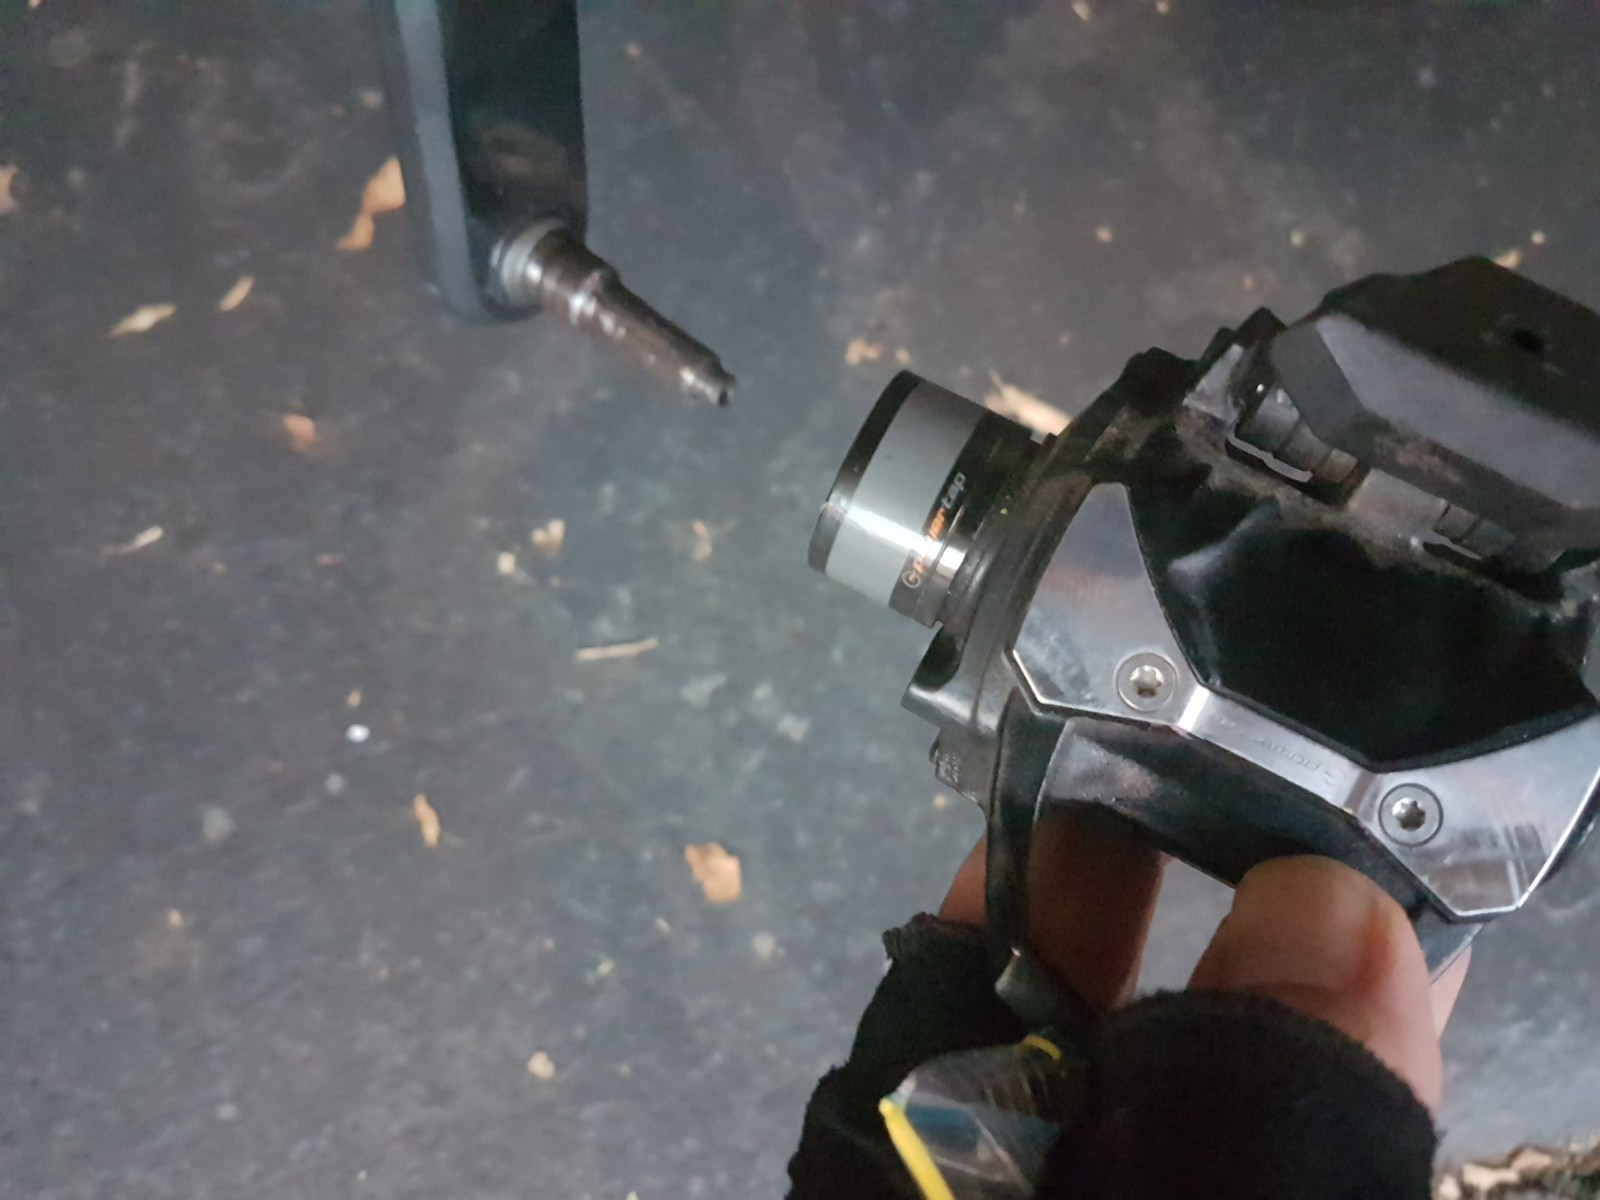 8b63473dd I have 2 Quarq crank power meters and I have the powertap PS1 pedals. The  Quarq product is superior to the powertap. After 500lm of use the PS1 pedal  ...